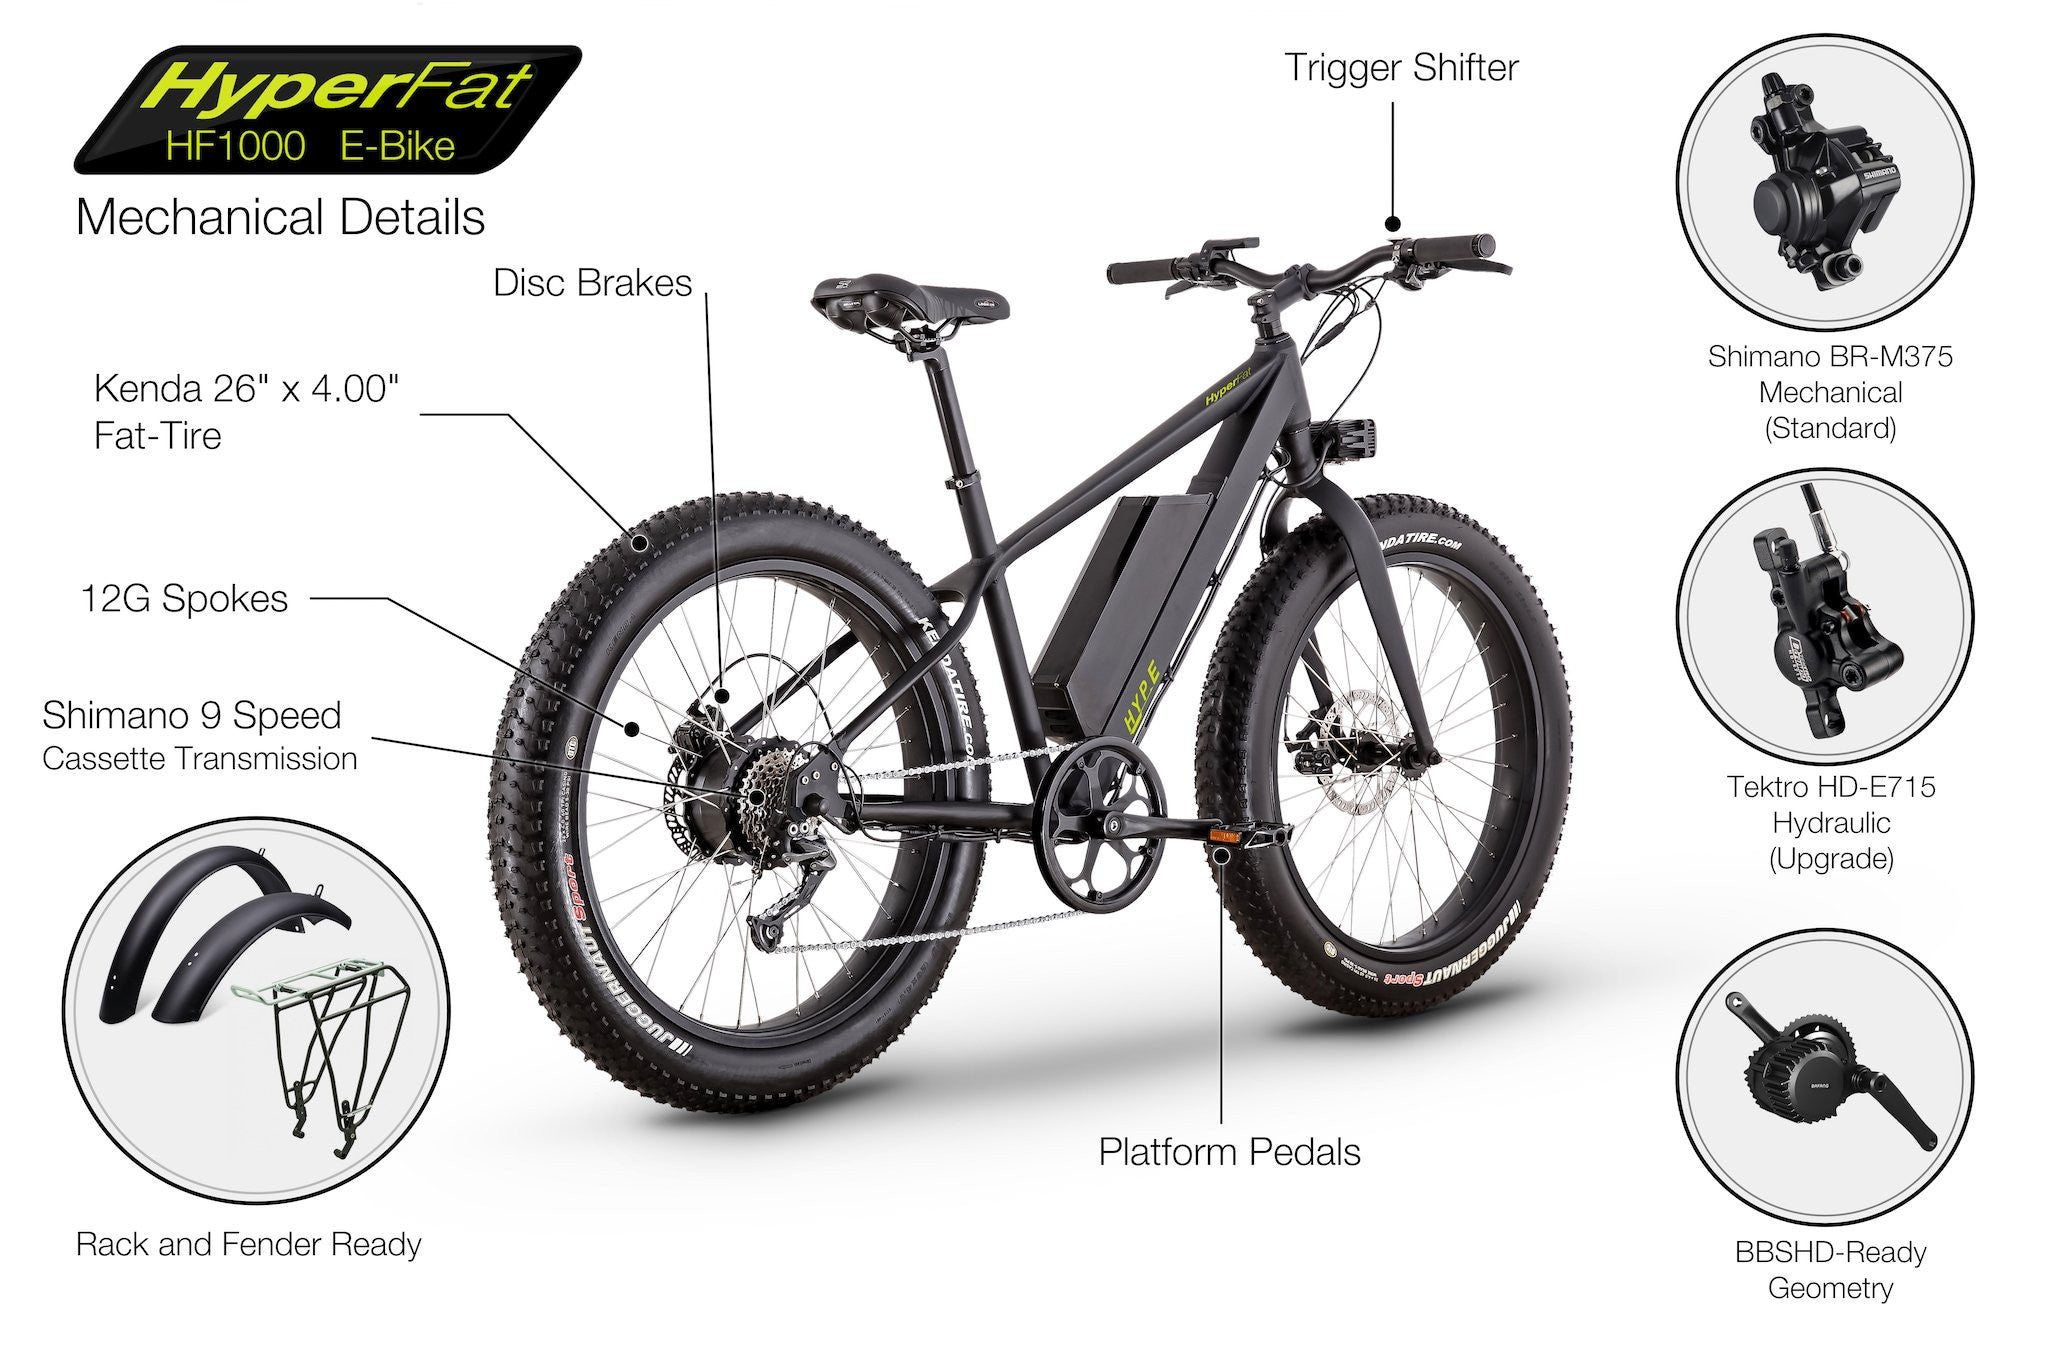 Hyper Fat E-Bike Mechanical